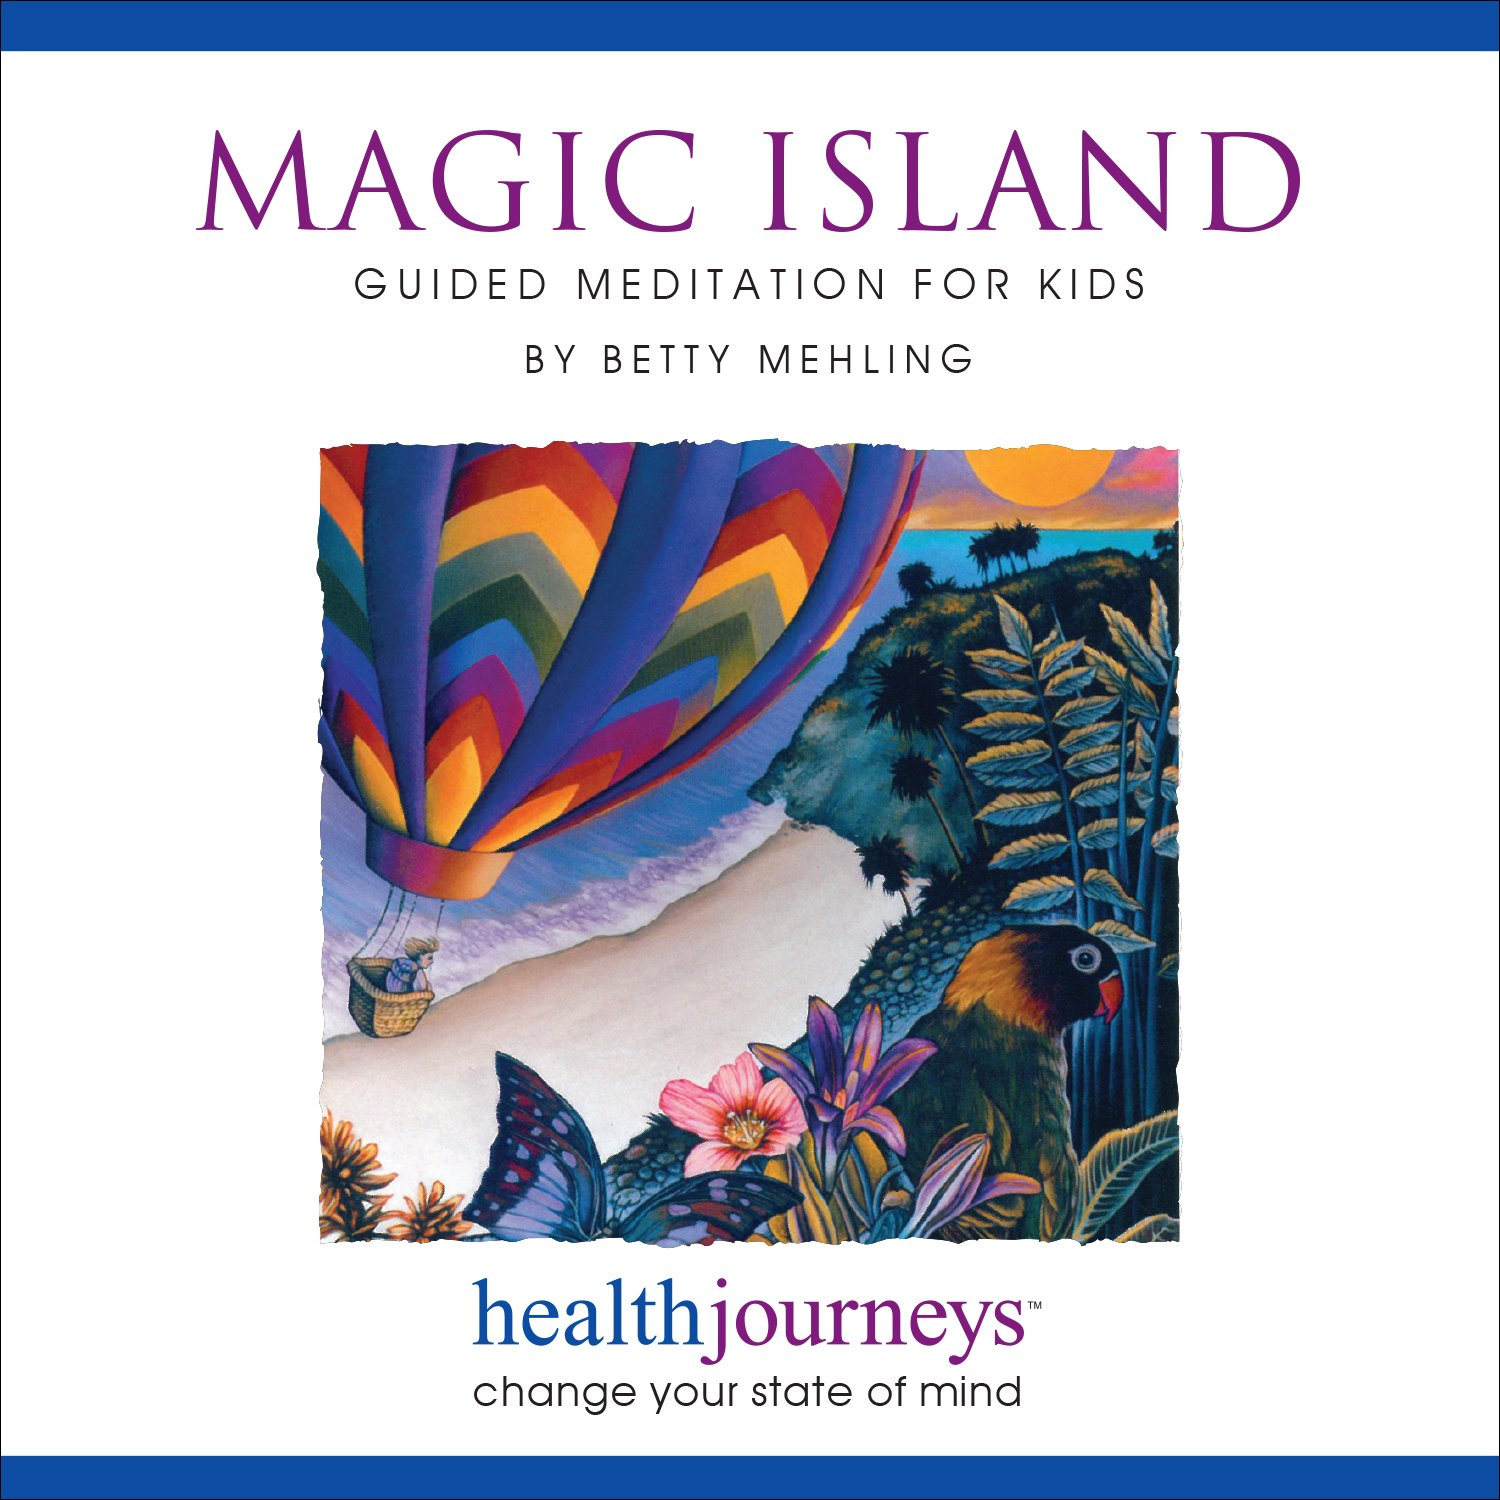 Magic Island: Guided Meditation for Kids - Research Proven Guided Imagery and Relaxation for Kids Ages 4-10, for Boosting Confidence, Reducing Stress, and Help with Sleeping. by Health Journeys